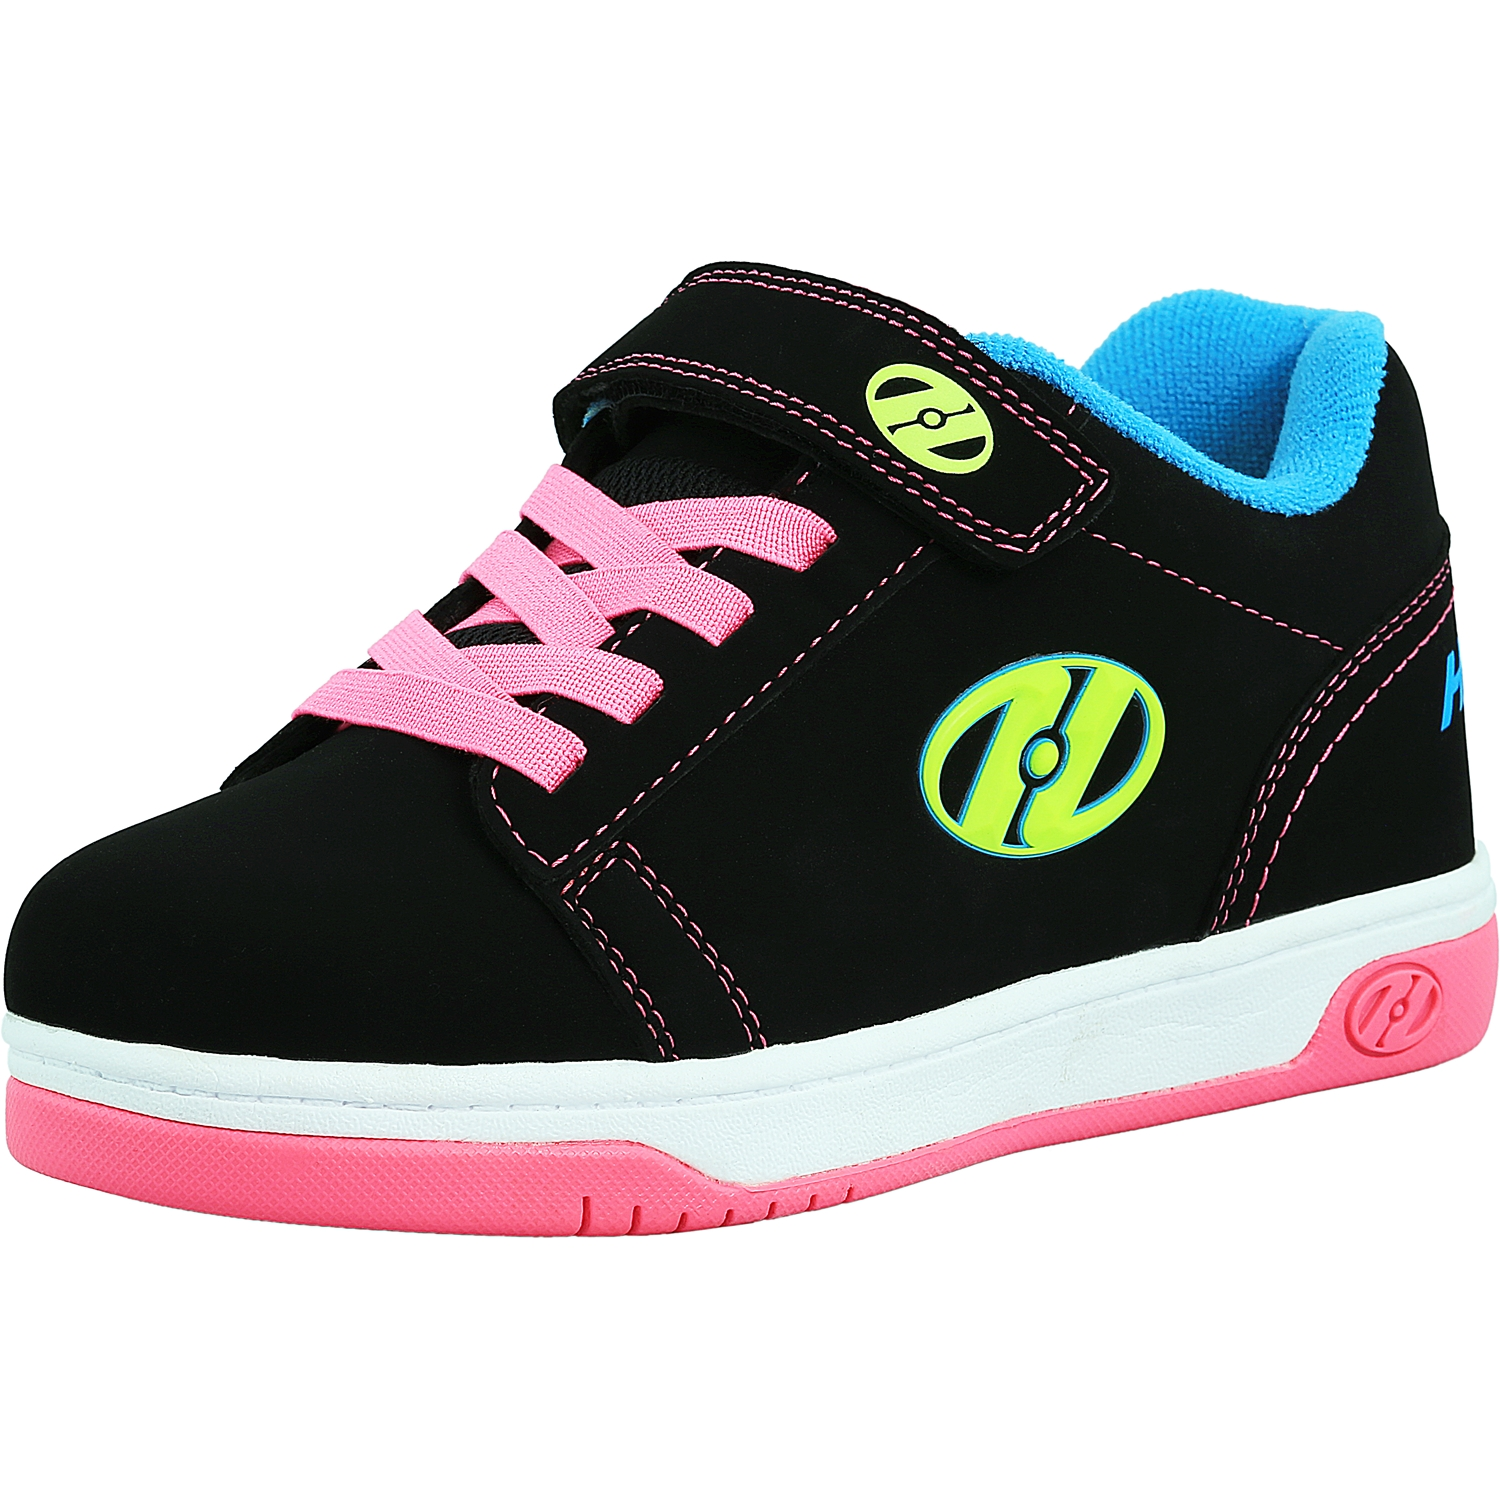 Heelys Dual Up X2 Black / Neon Multi Ankle-High Fashion Sneaker - 1M